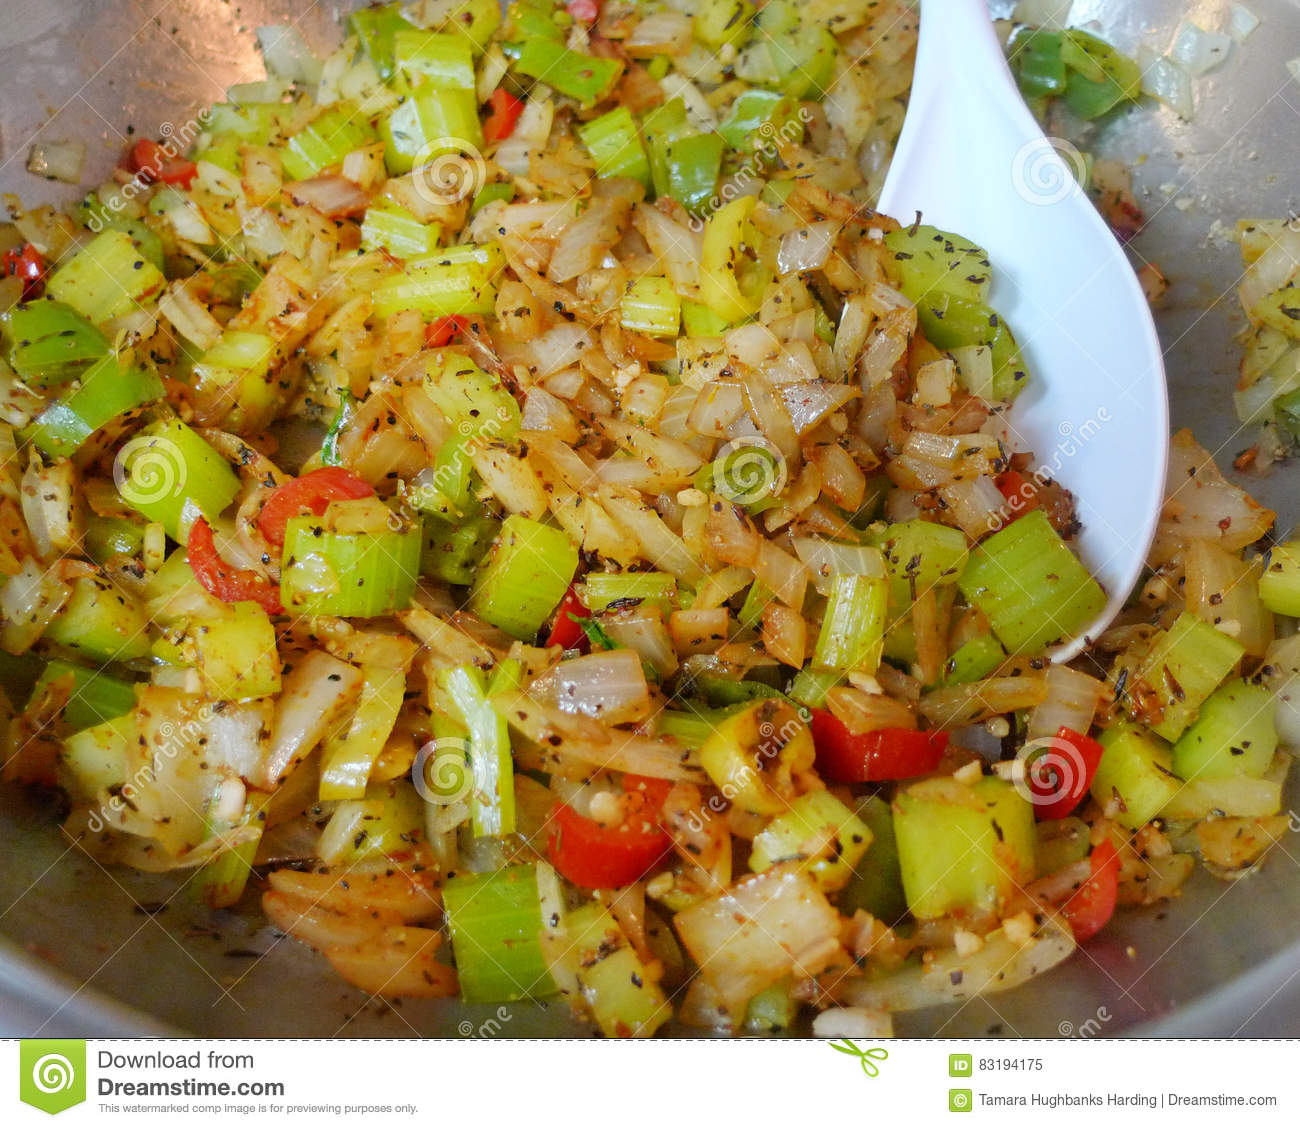 Celery, onions, peppers and spices in pan with spoon